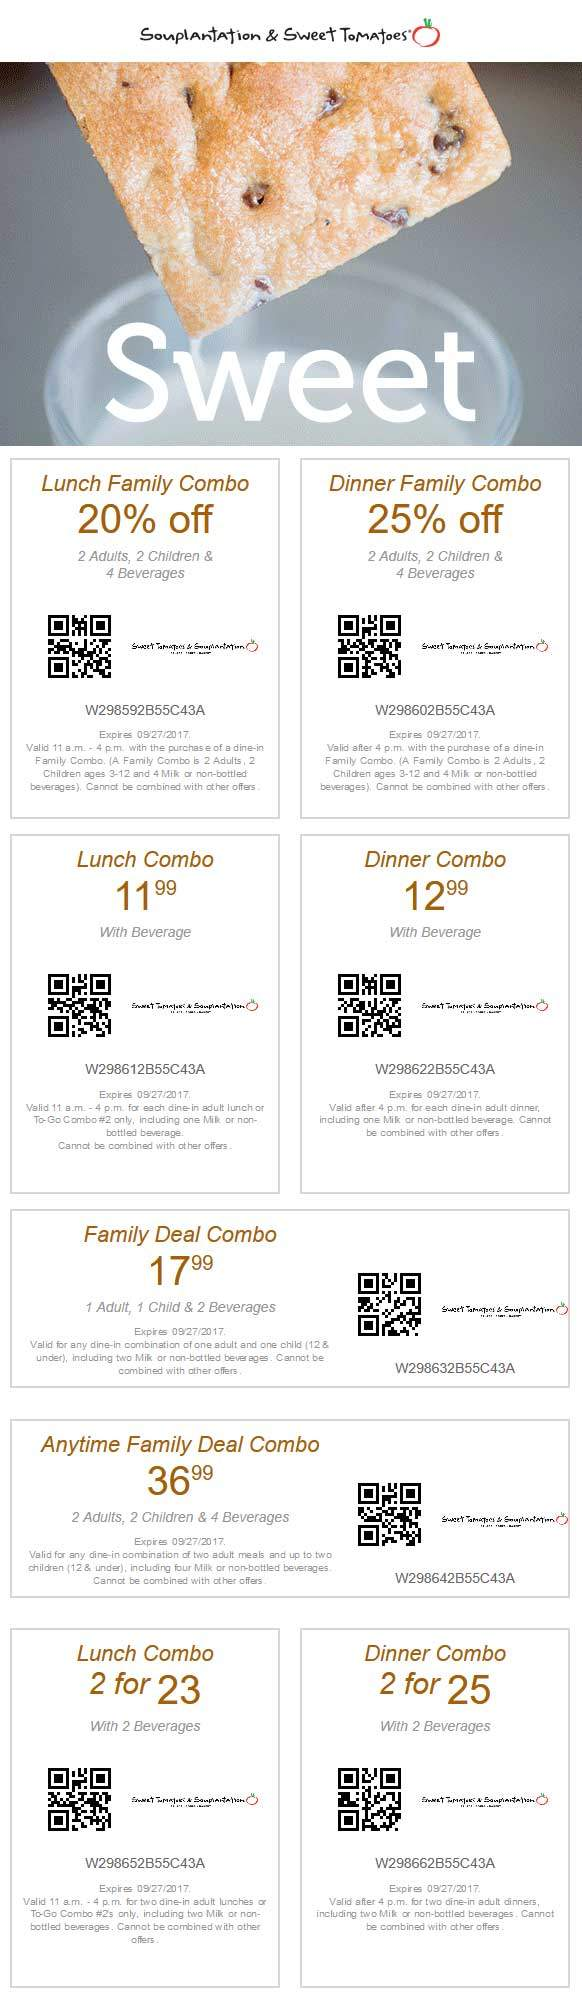 Sweet Tomatoes Coupon March 2019 20% off lunch, 25% off dinner at Souplantation & Sweet Tomatoes